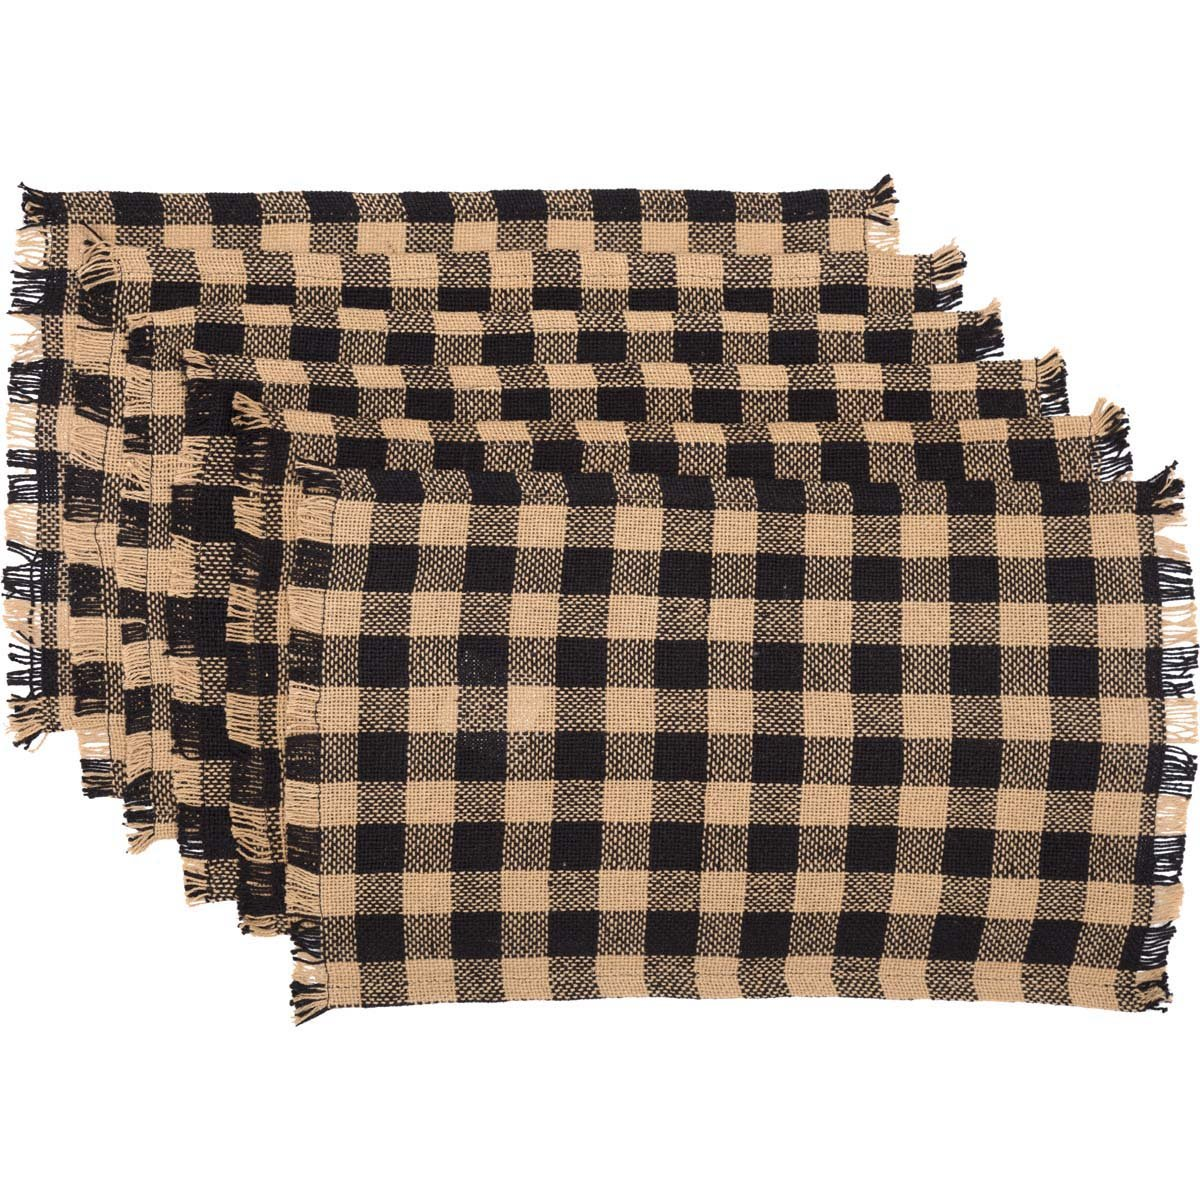 VHC Brands Classic Country Primitive Tabletop & Kitchen-Burlap Check Black  Fringed Placemat Set of 6, 12\